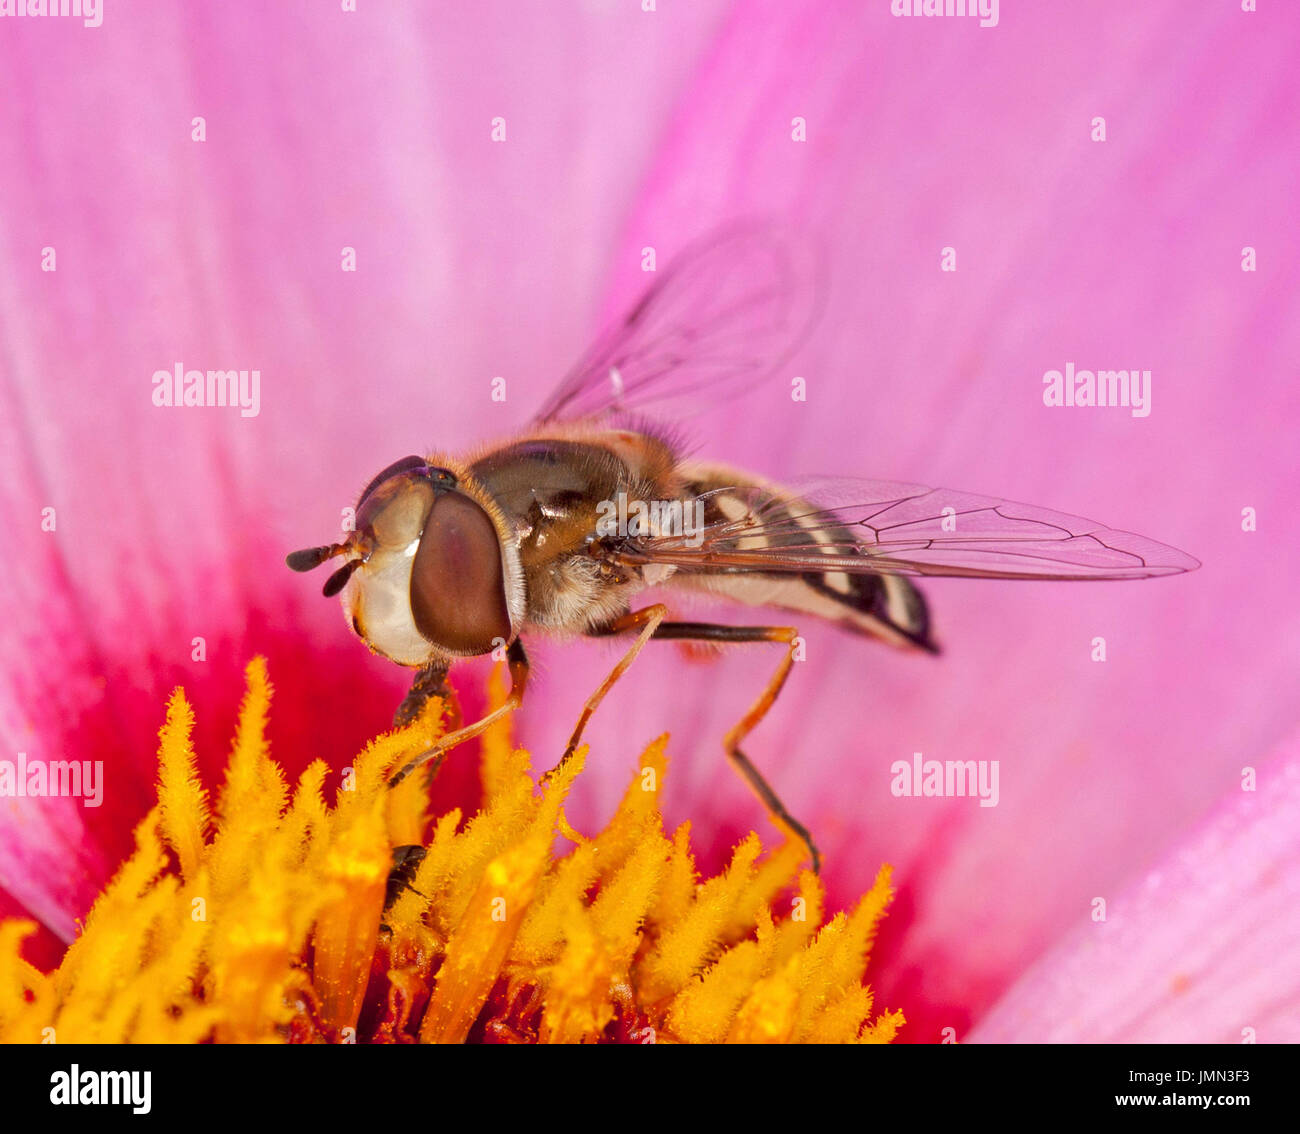 Hoverfly, with huge eyes clearly visible, a beneficial insect pollinator on pink dahlia flower in English garden - Stock Image